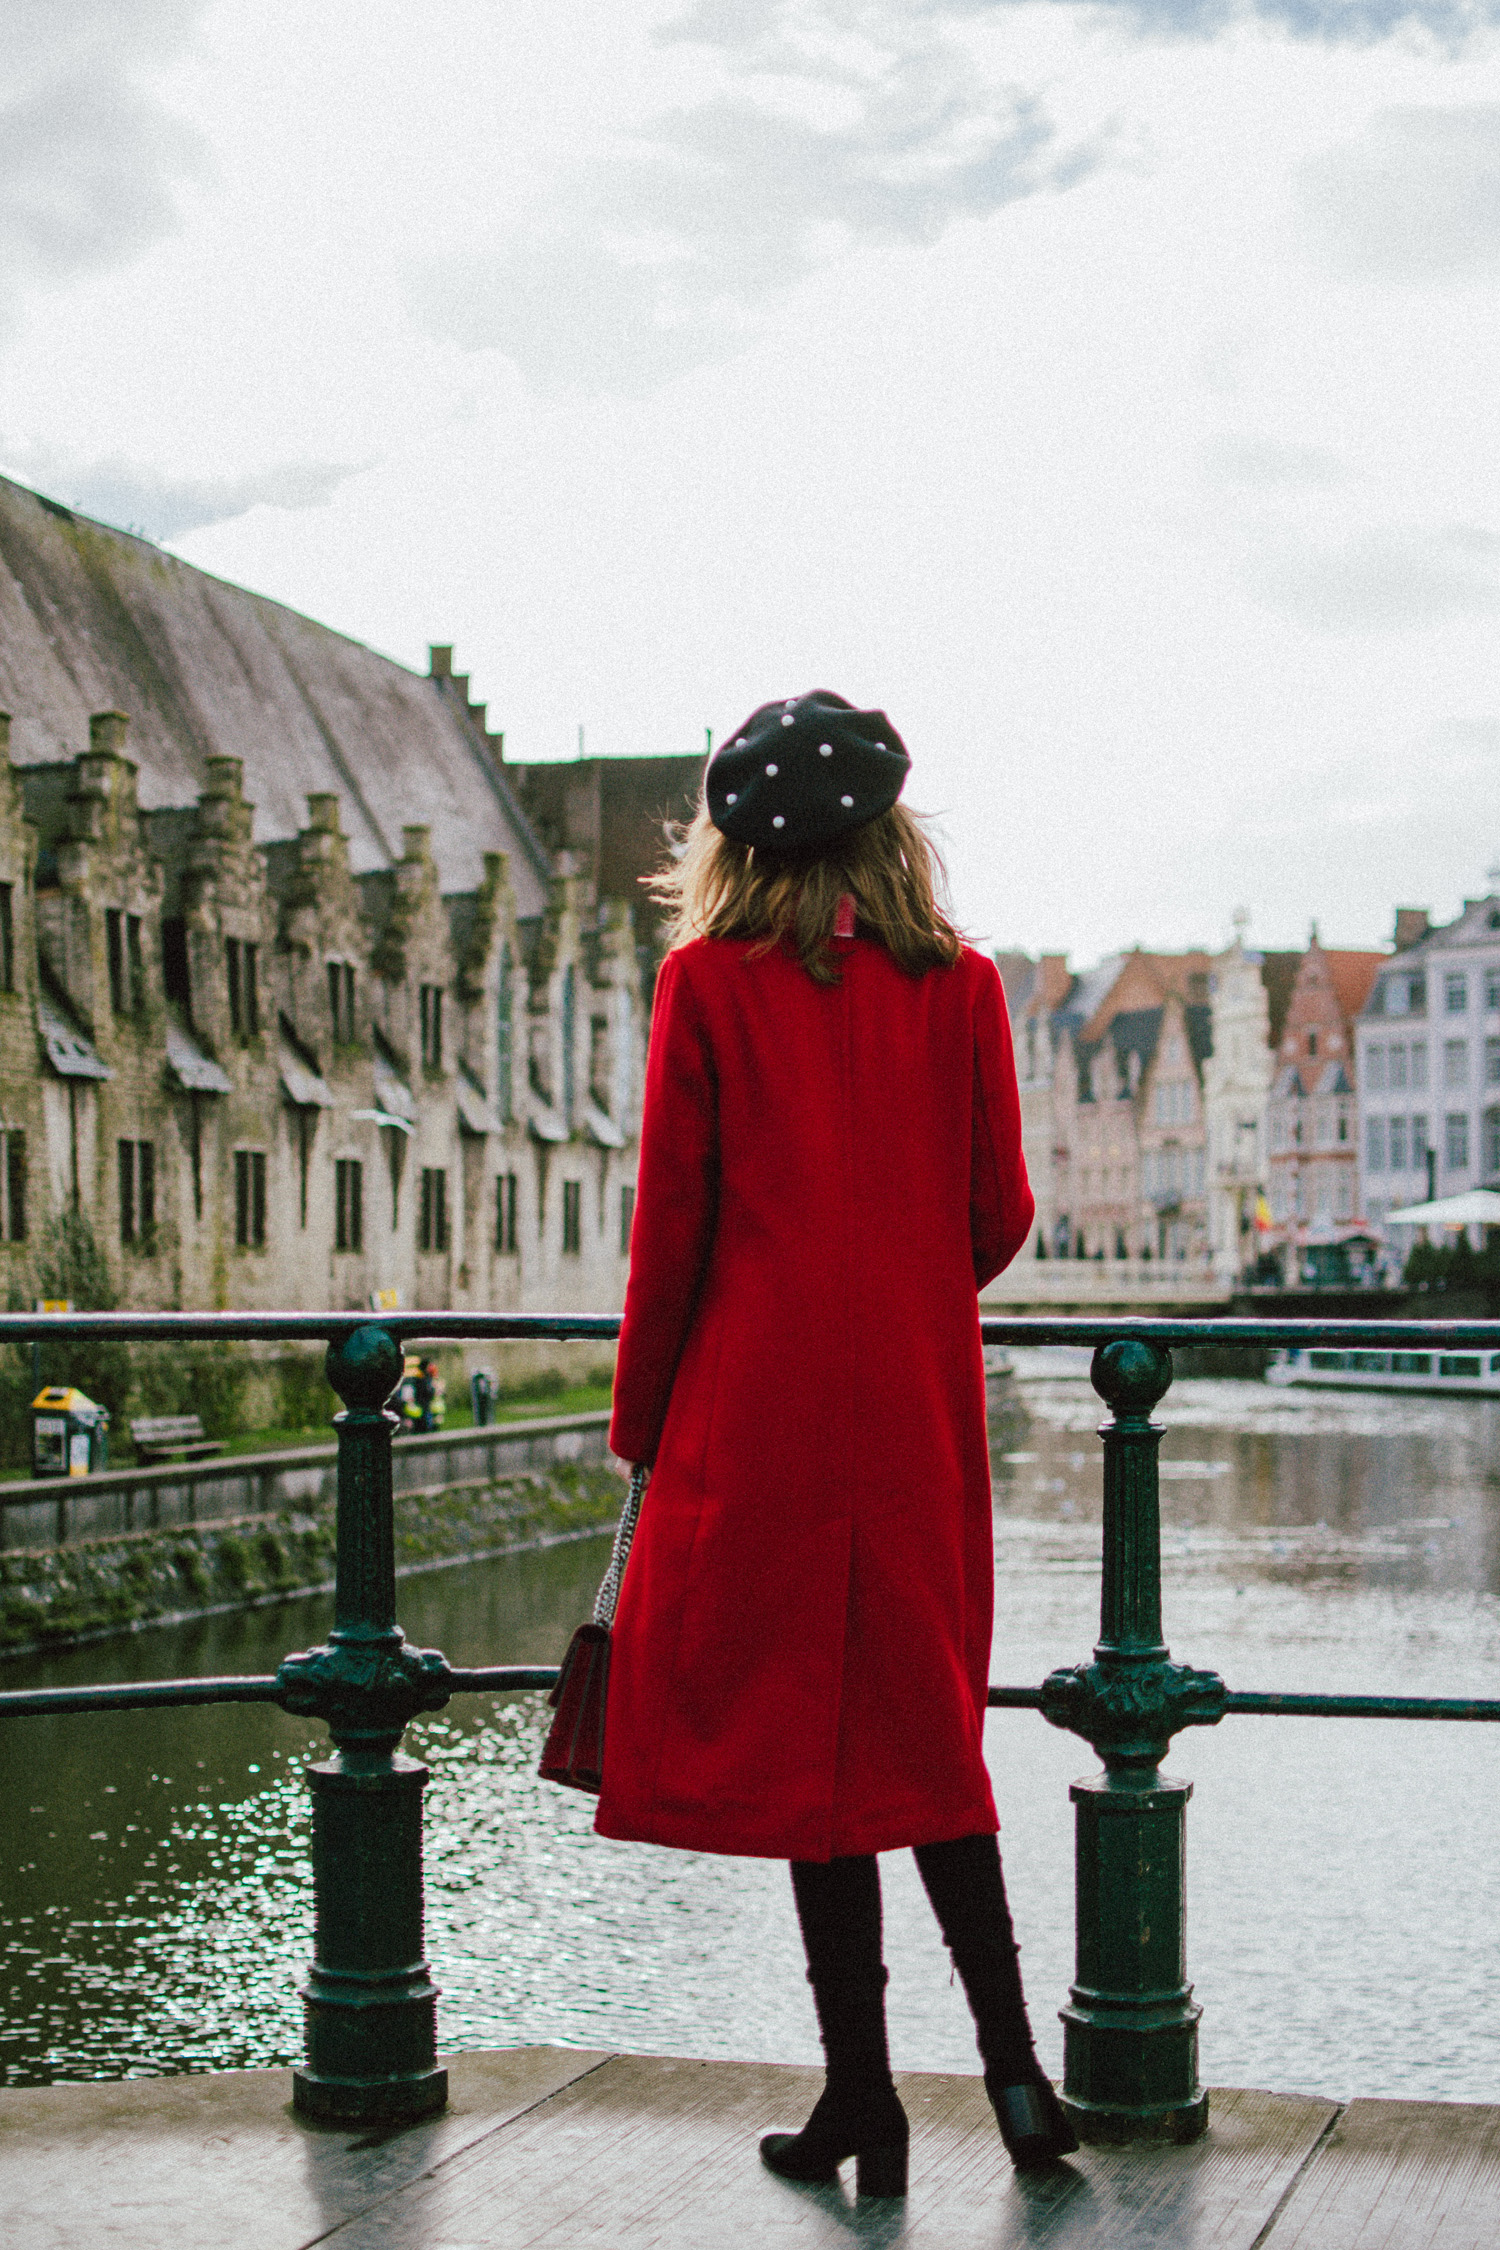 Travel Guide How To Spend 24 Hours In Ghent Belgium